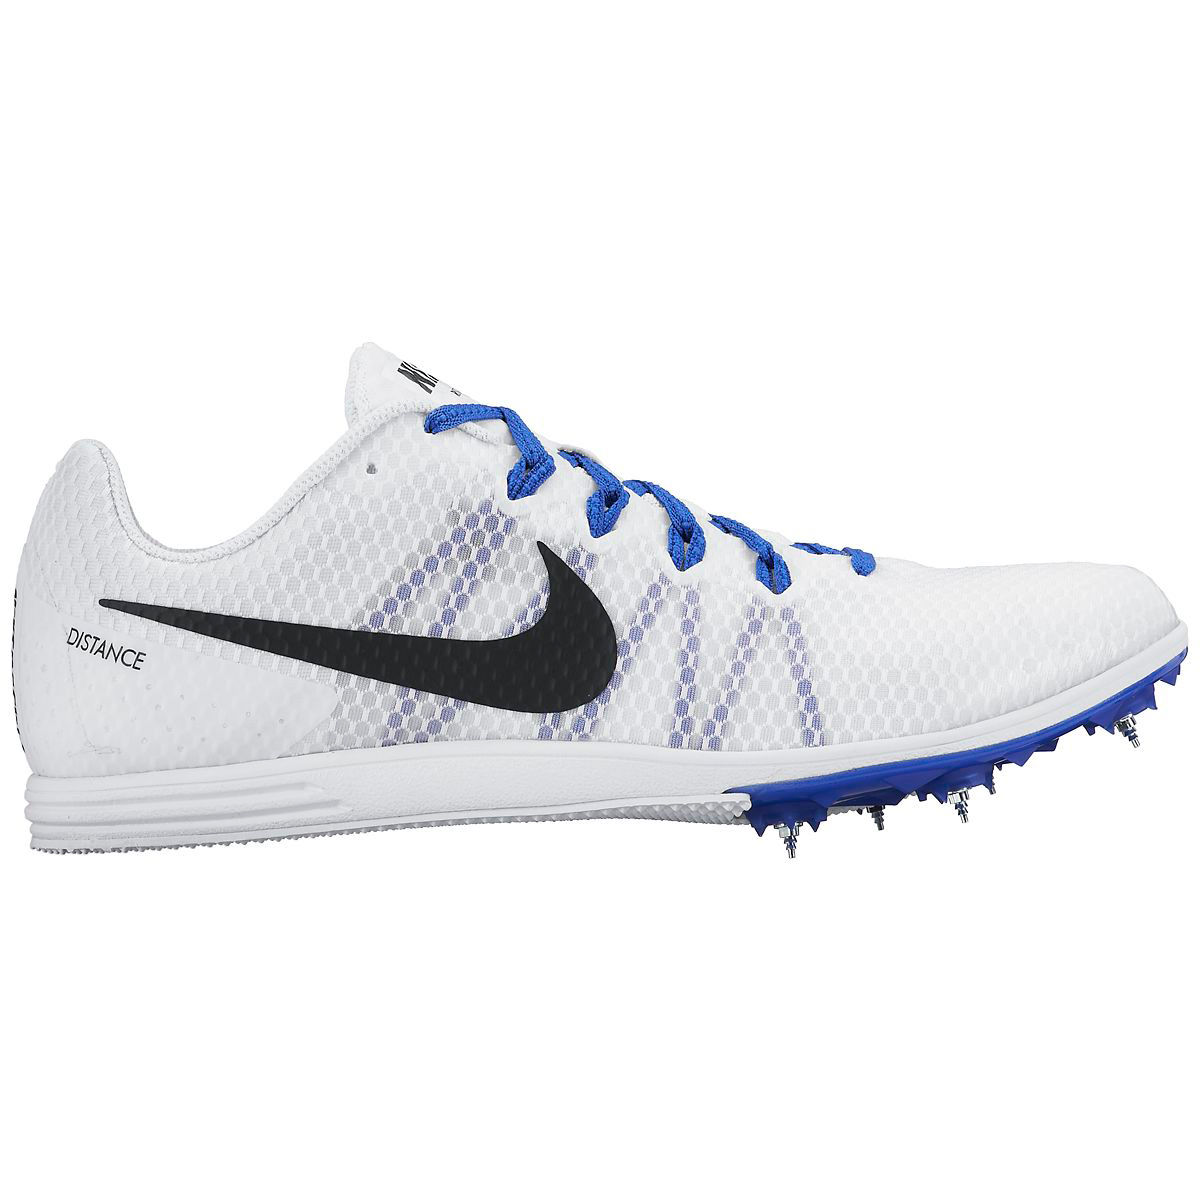 wiggle nike zoom rival d 9 shoes ho15 spiked running